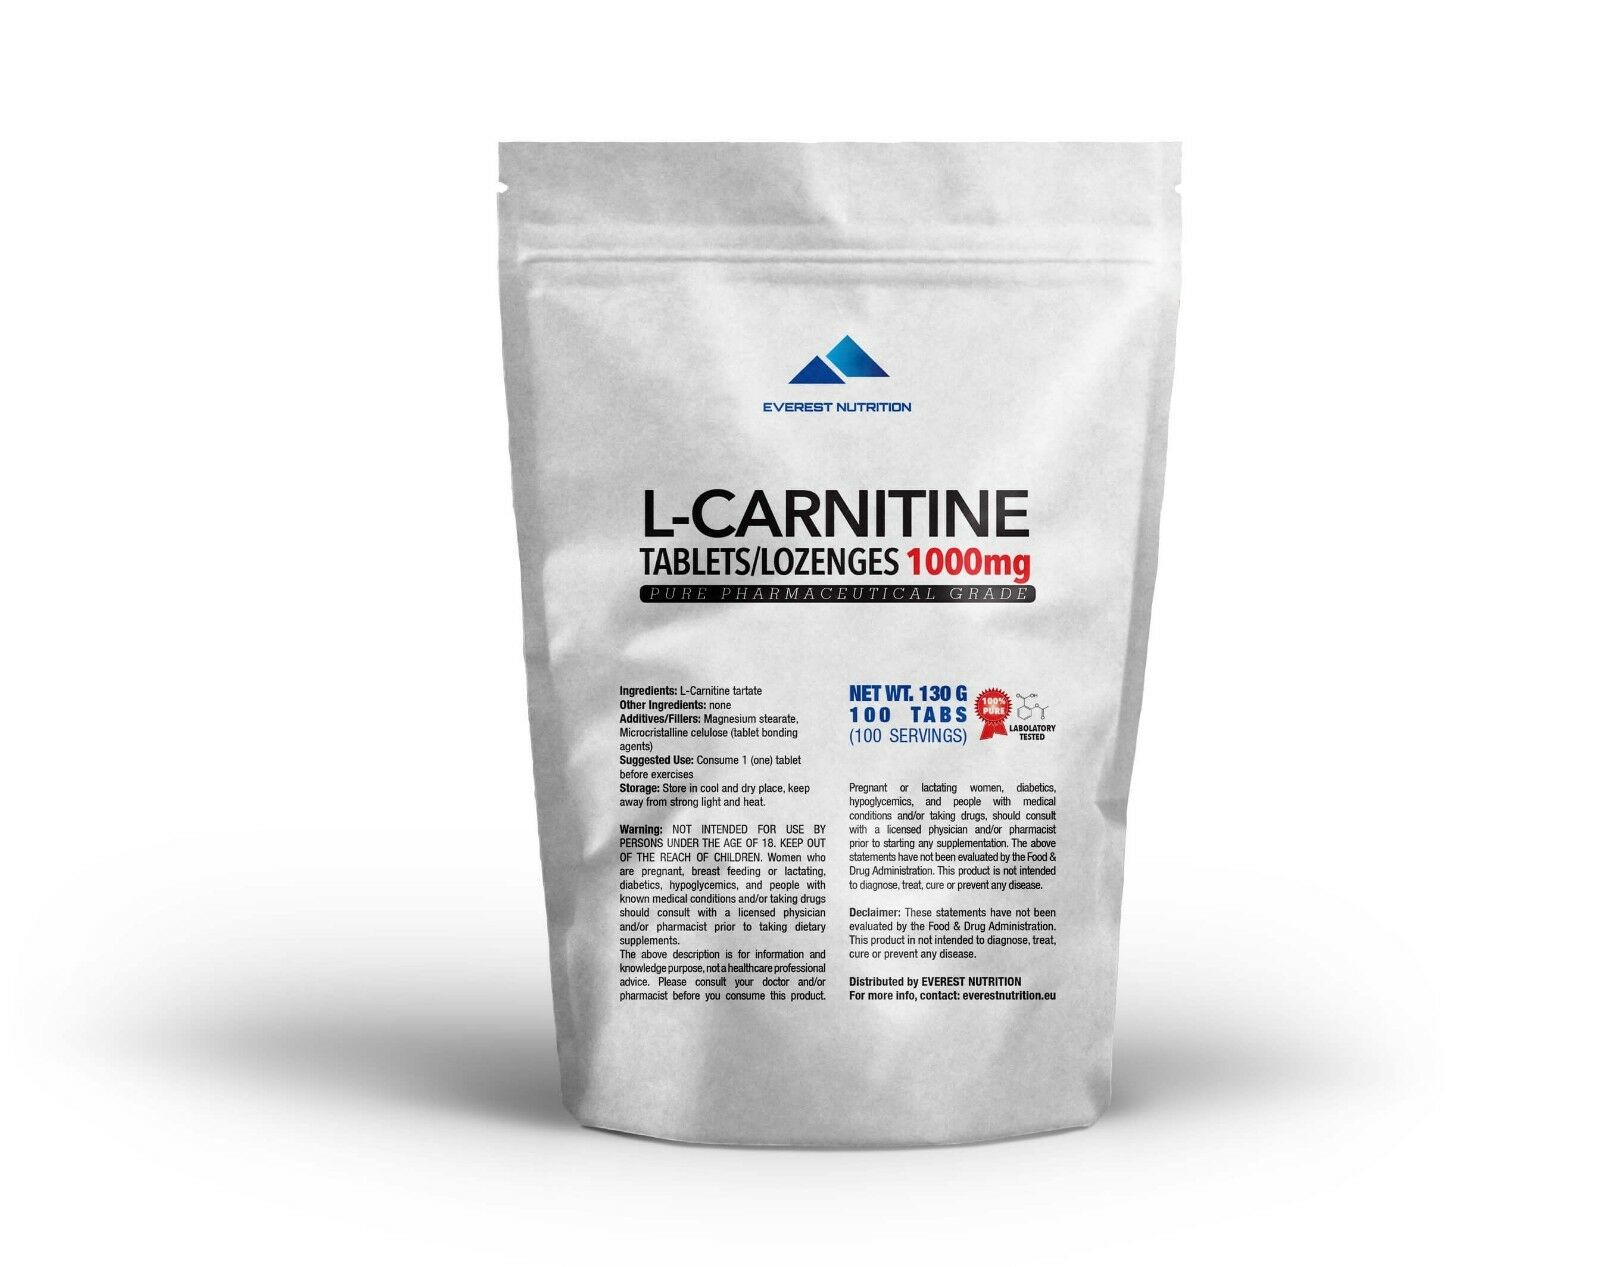 L-Carnitine Carnitine tablets   lozenges 1000mg Pure Pharmaceutical Quality